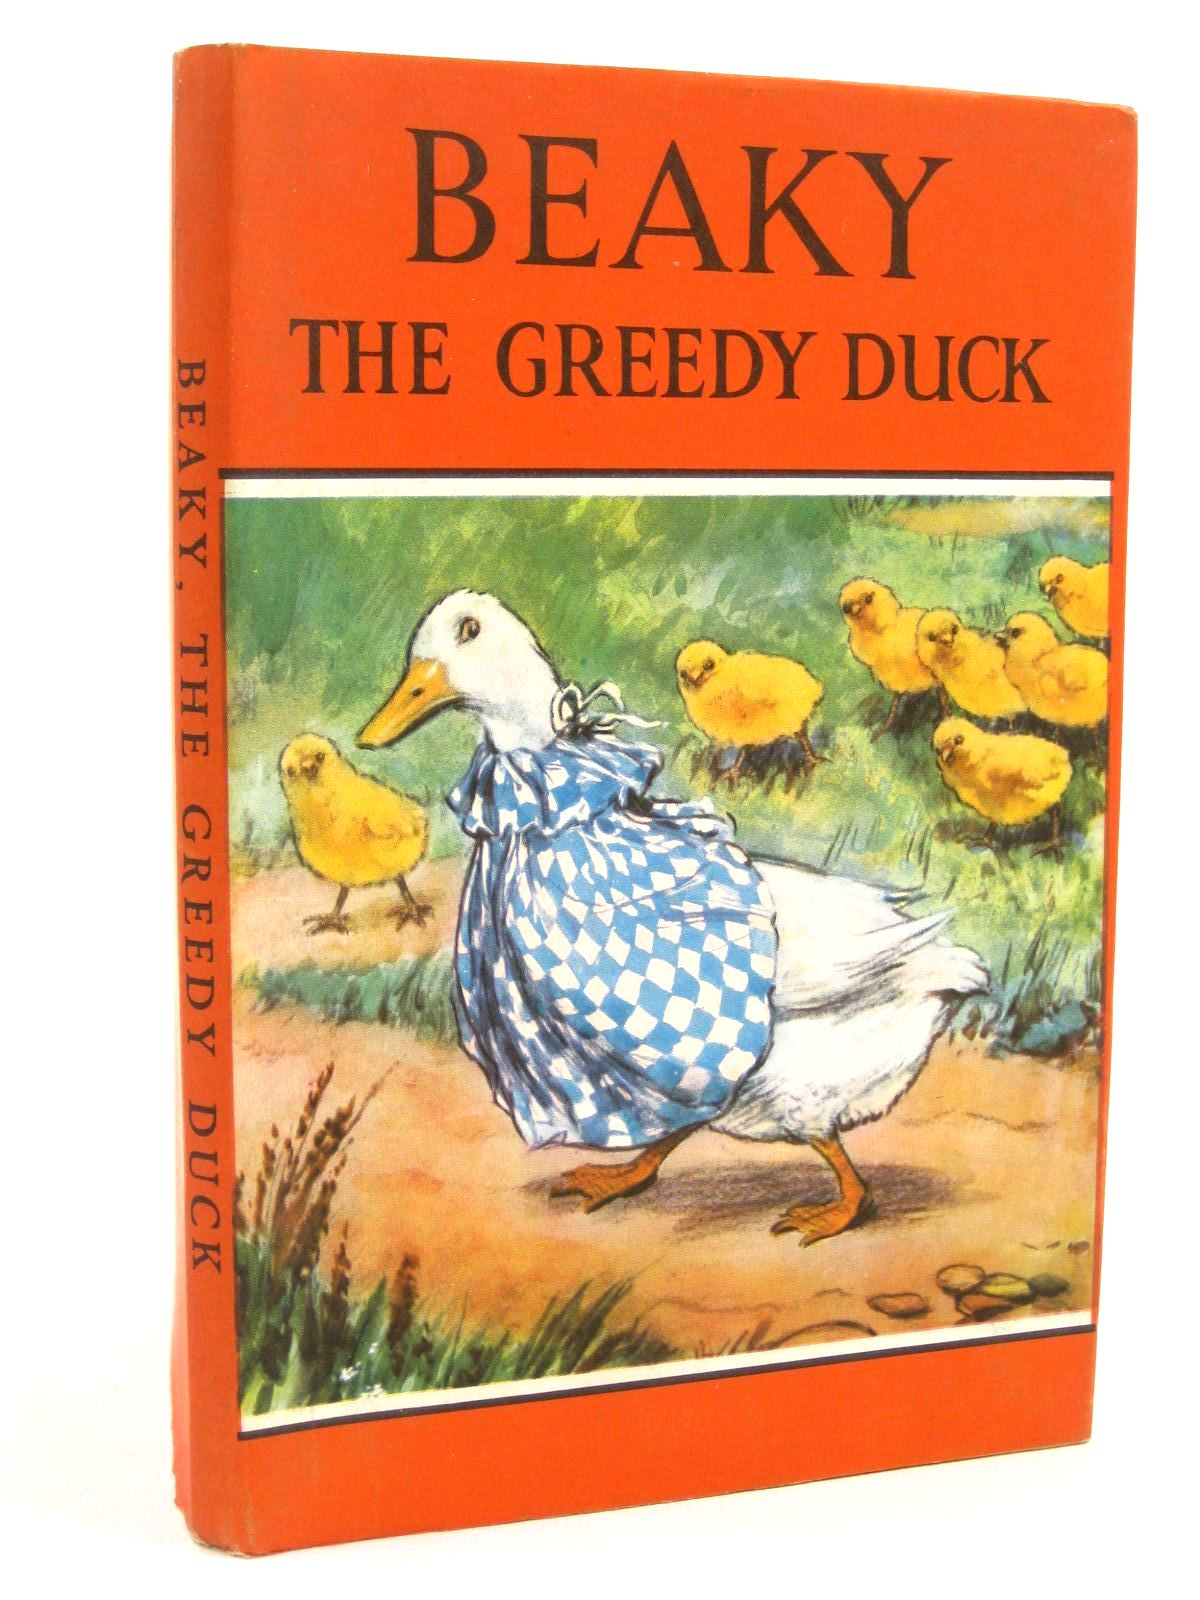 Photo of BEAKY THE GREEDY DUCK written by Barr, Noel illustrated by Hickling, P.B. published by Wills & Hepworth Ltd. (STOCK CODE: 1316801)  for sale by Stella & Rose's Books